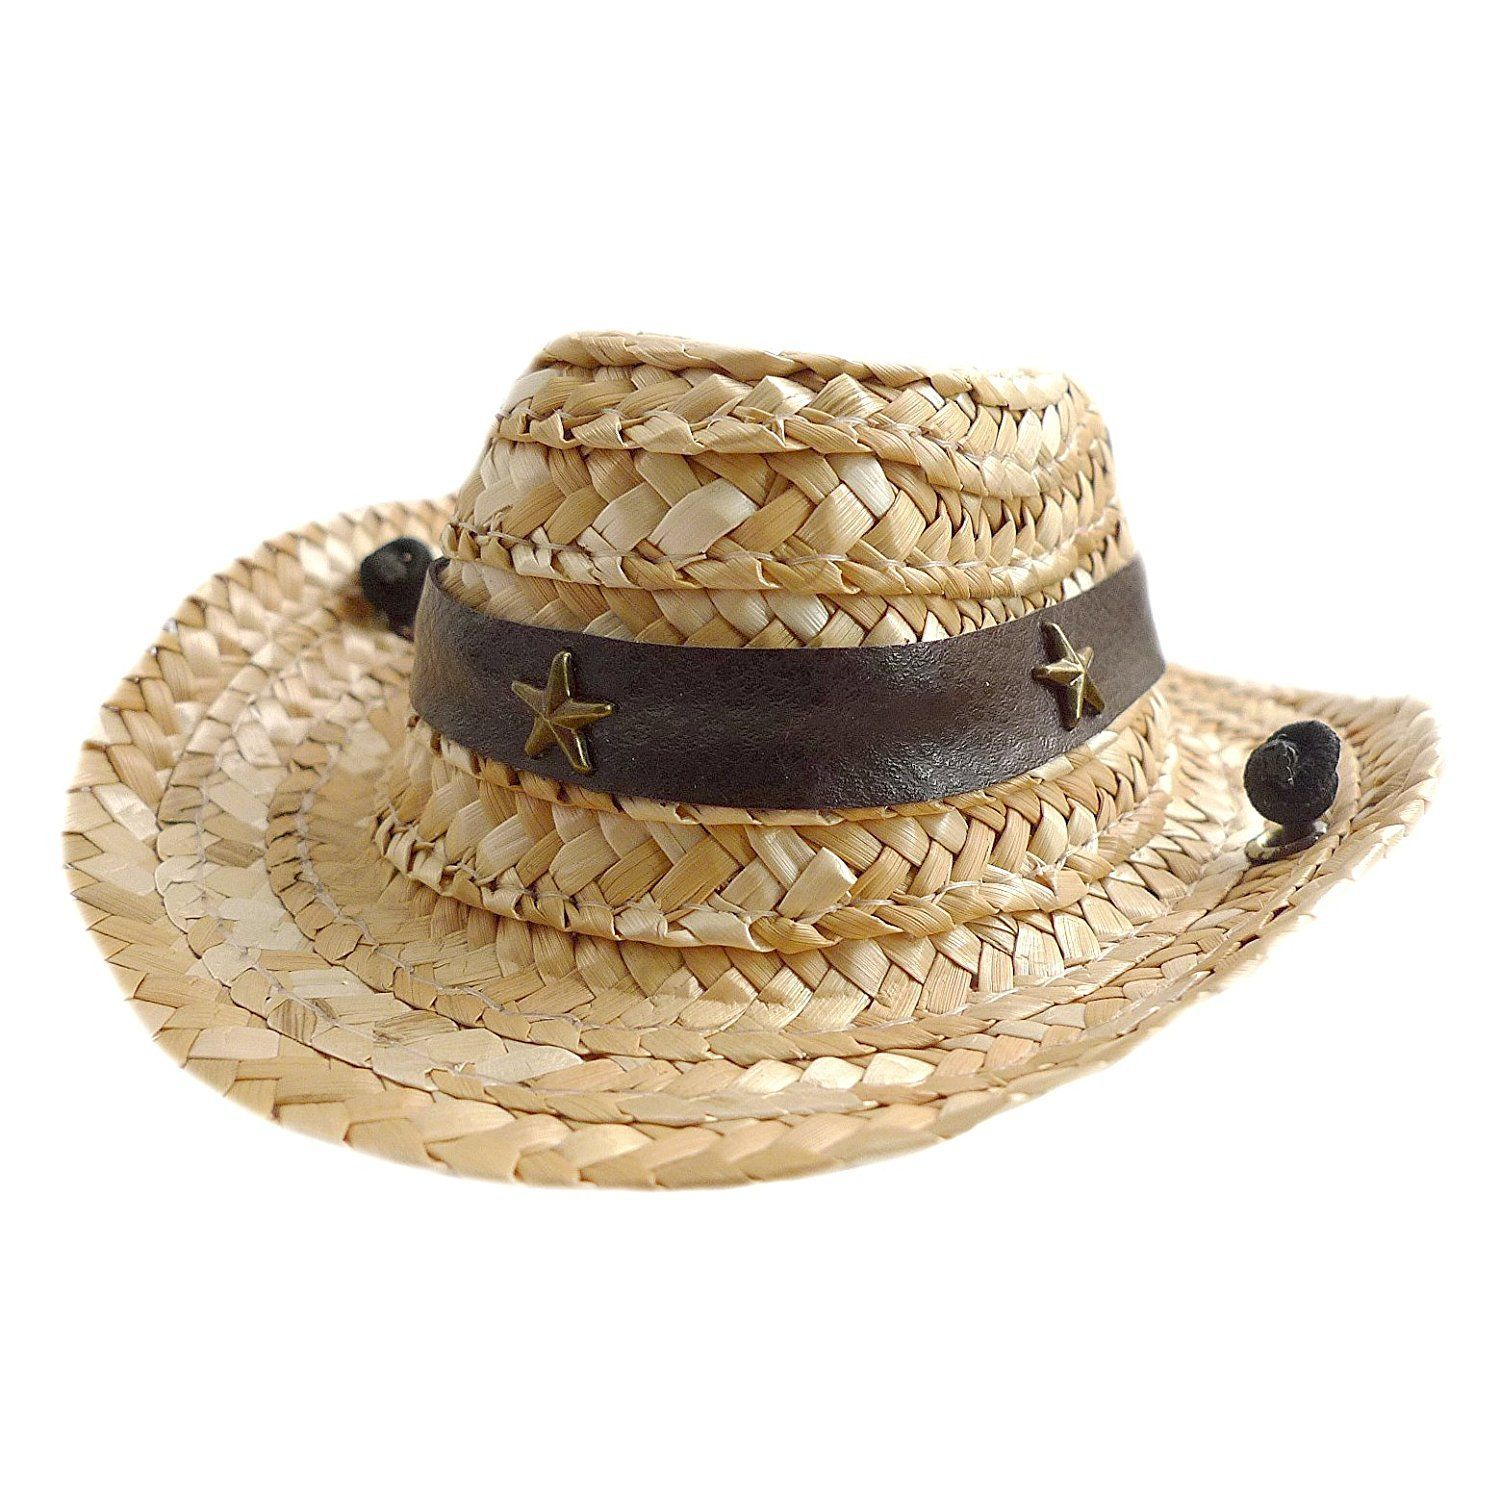 Accessory Straw Cow boy hat with Pu Leather Star rivet for Pet or Cat Use New Collection Frenchic